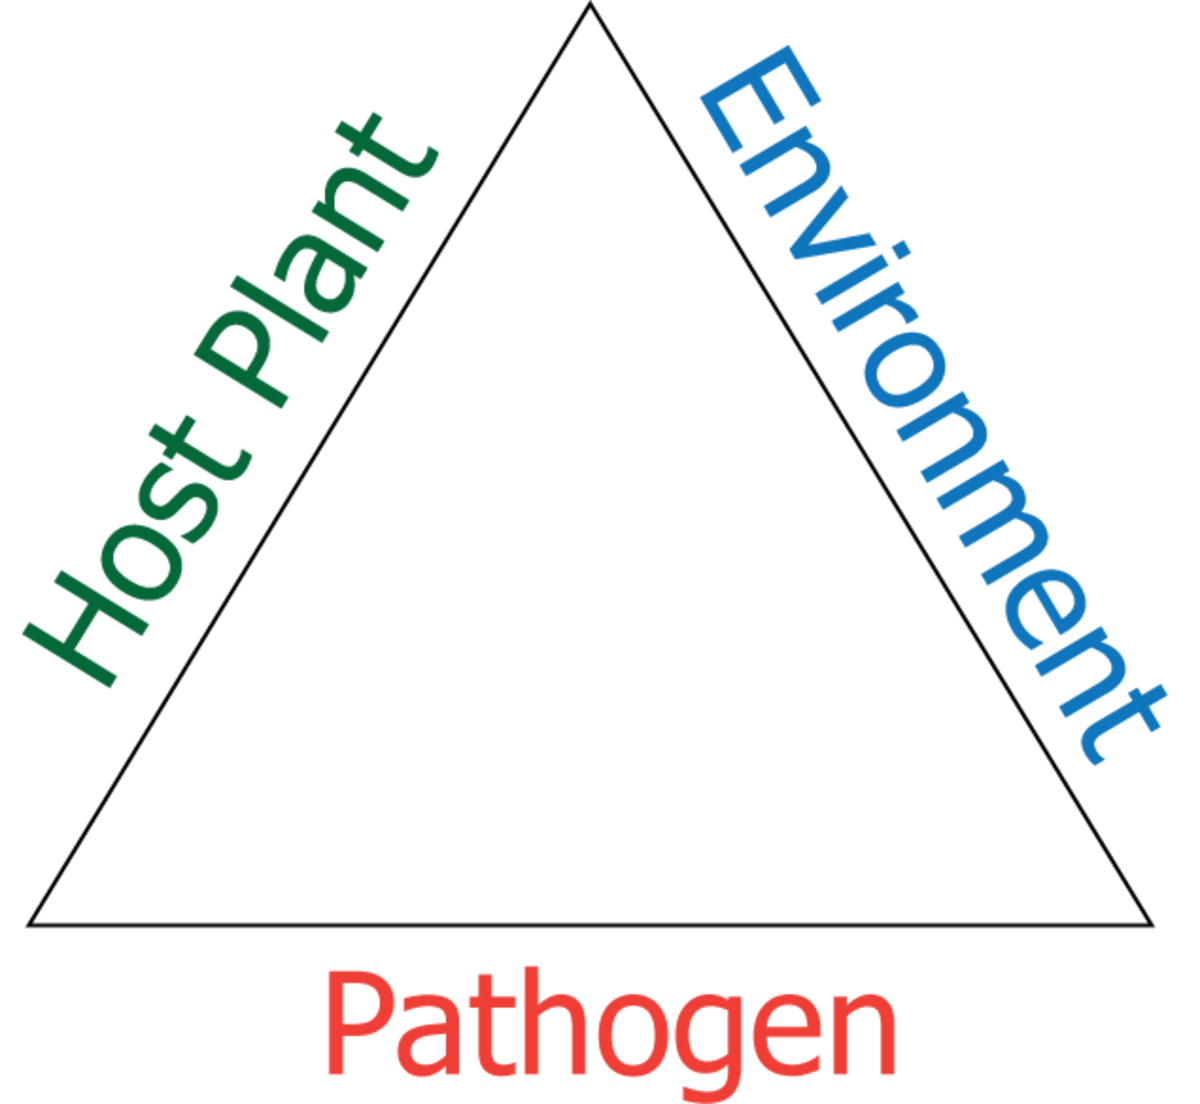 In order for disease to occur, there must be a susceptible plant, a favorable environment and a pathogen (fungus, bacterium, virus, mycoplasma).